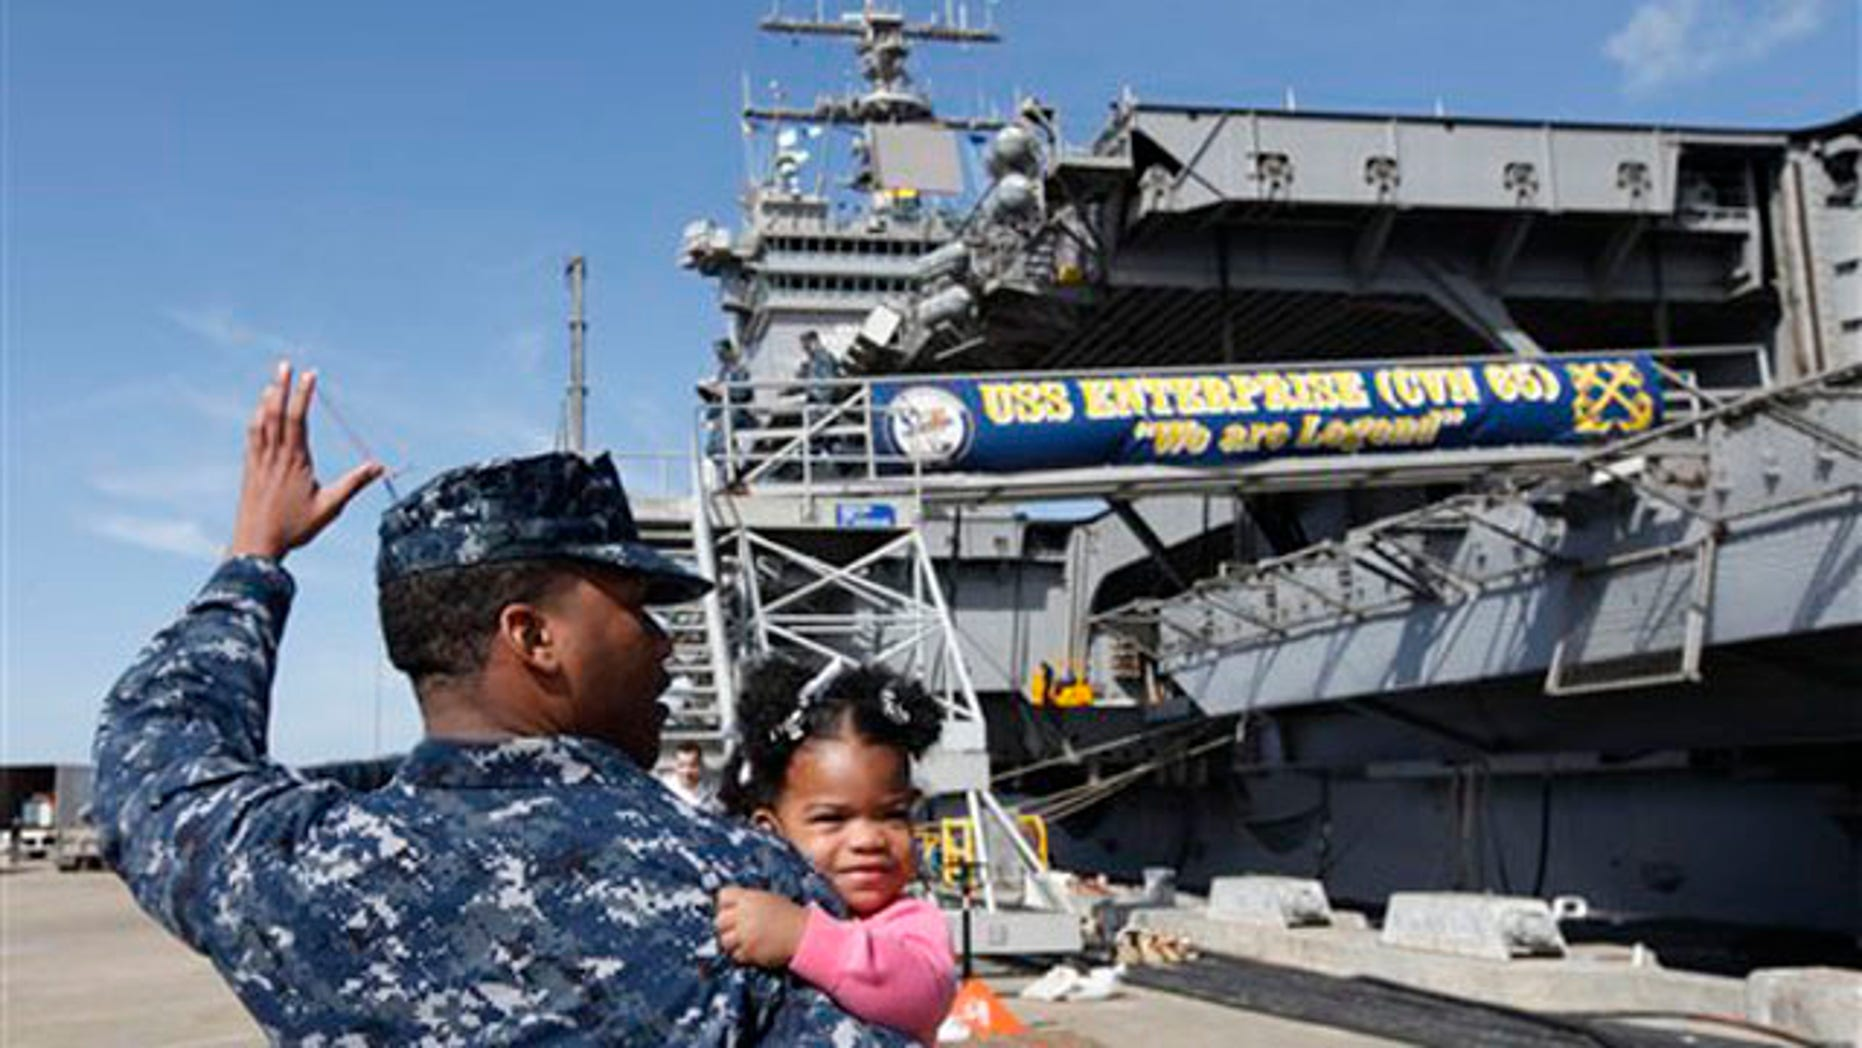 March 8, 2012: In this photo, Petty Officer 3rd Class Michael Joseph, carries his daughter Maleah, 1, to his re-enlistment ceremony aboard the nuclear powered aircraft carrier USS Enterprise at the Norfolk Naval Station in Norfolk, Va.